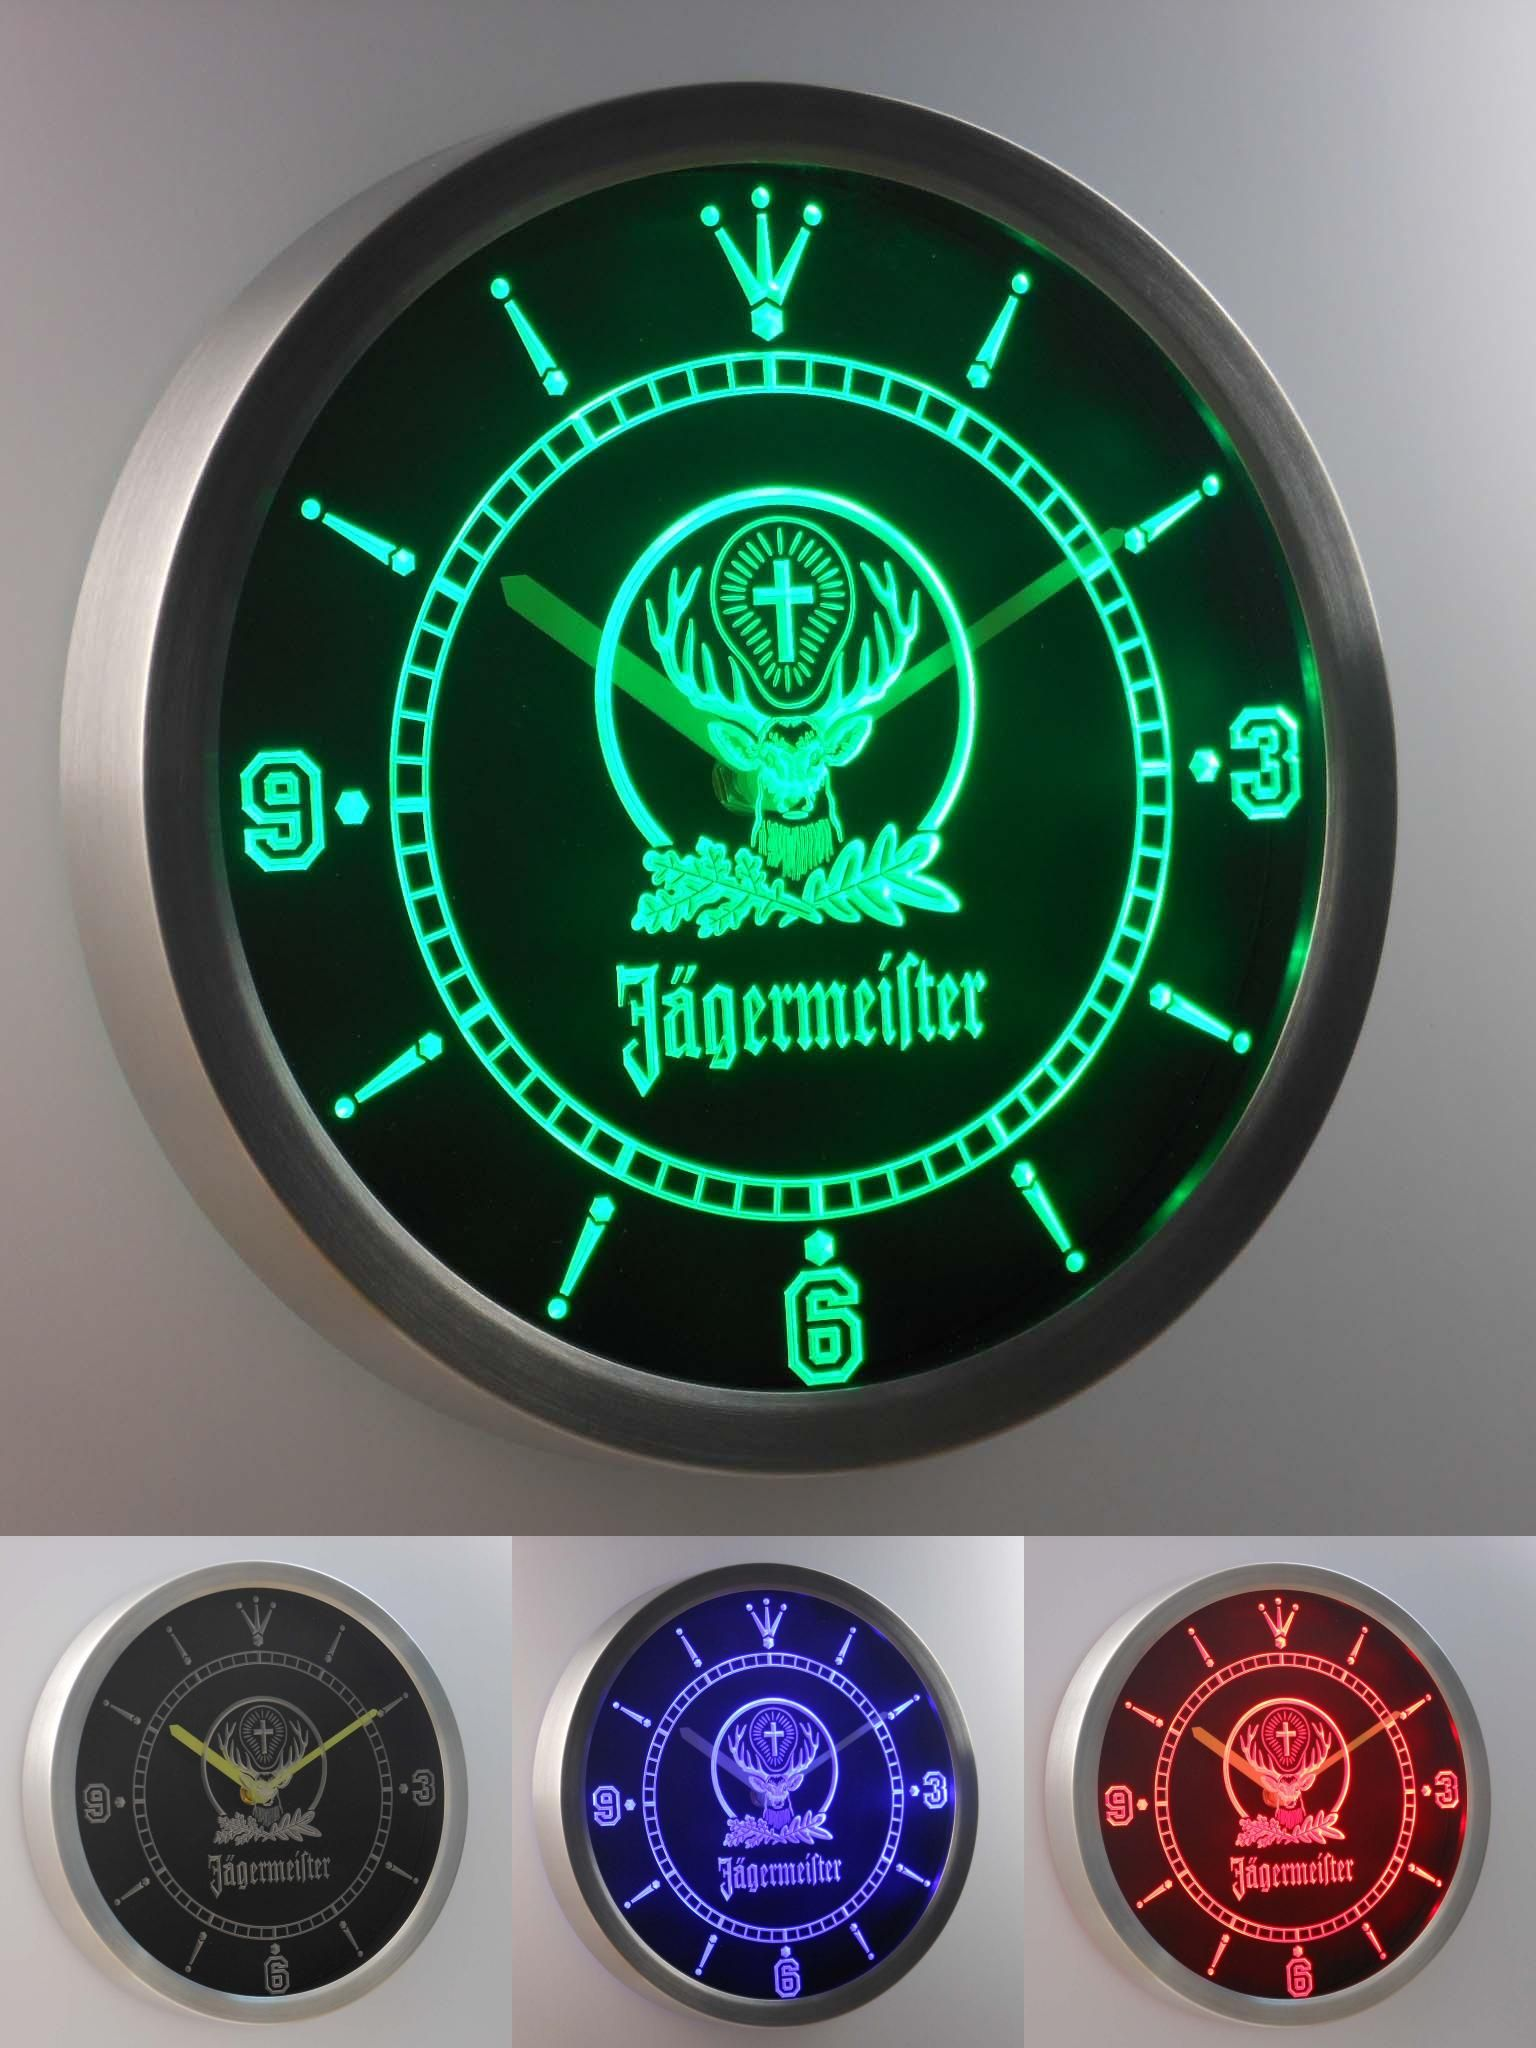 Visit To Buy Nc0572 Jagermeister Beer Neon Sign Led Wall Clock Advertisement Led Wall Clock Wall Clock Clock